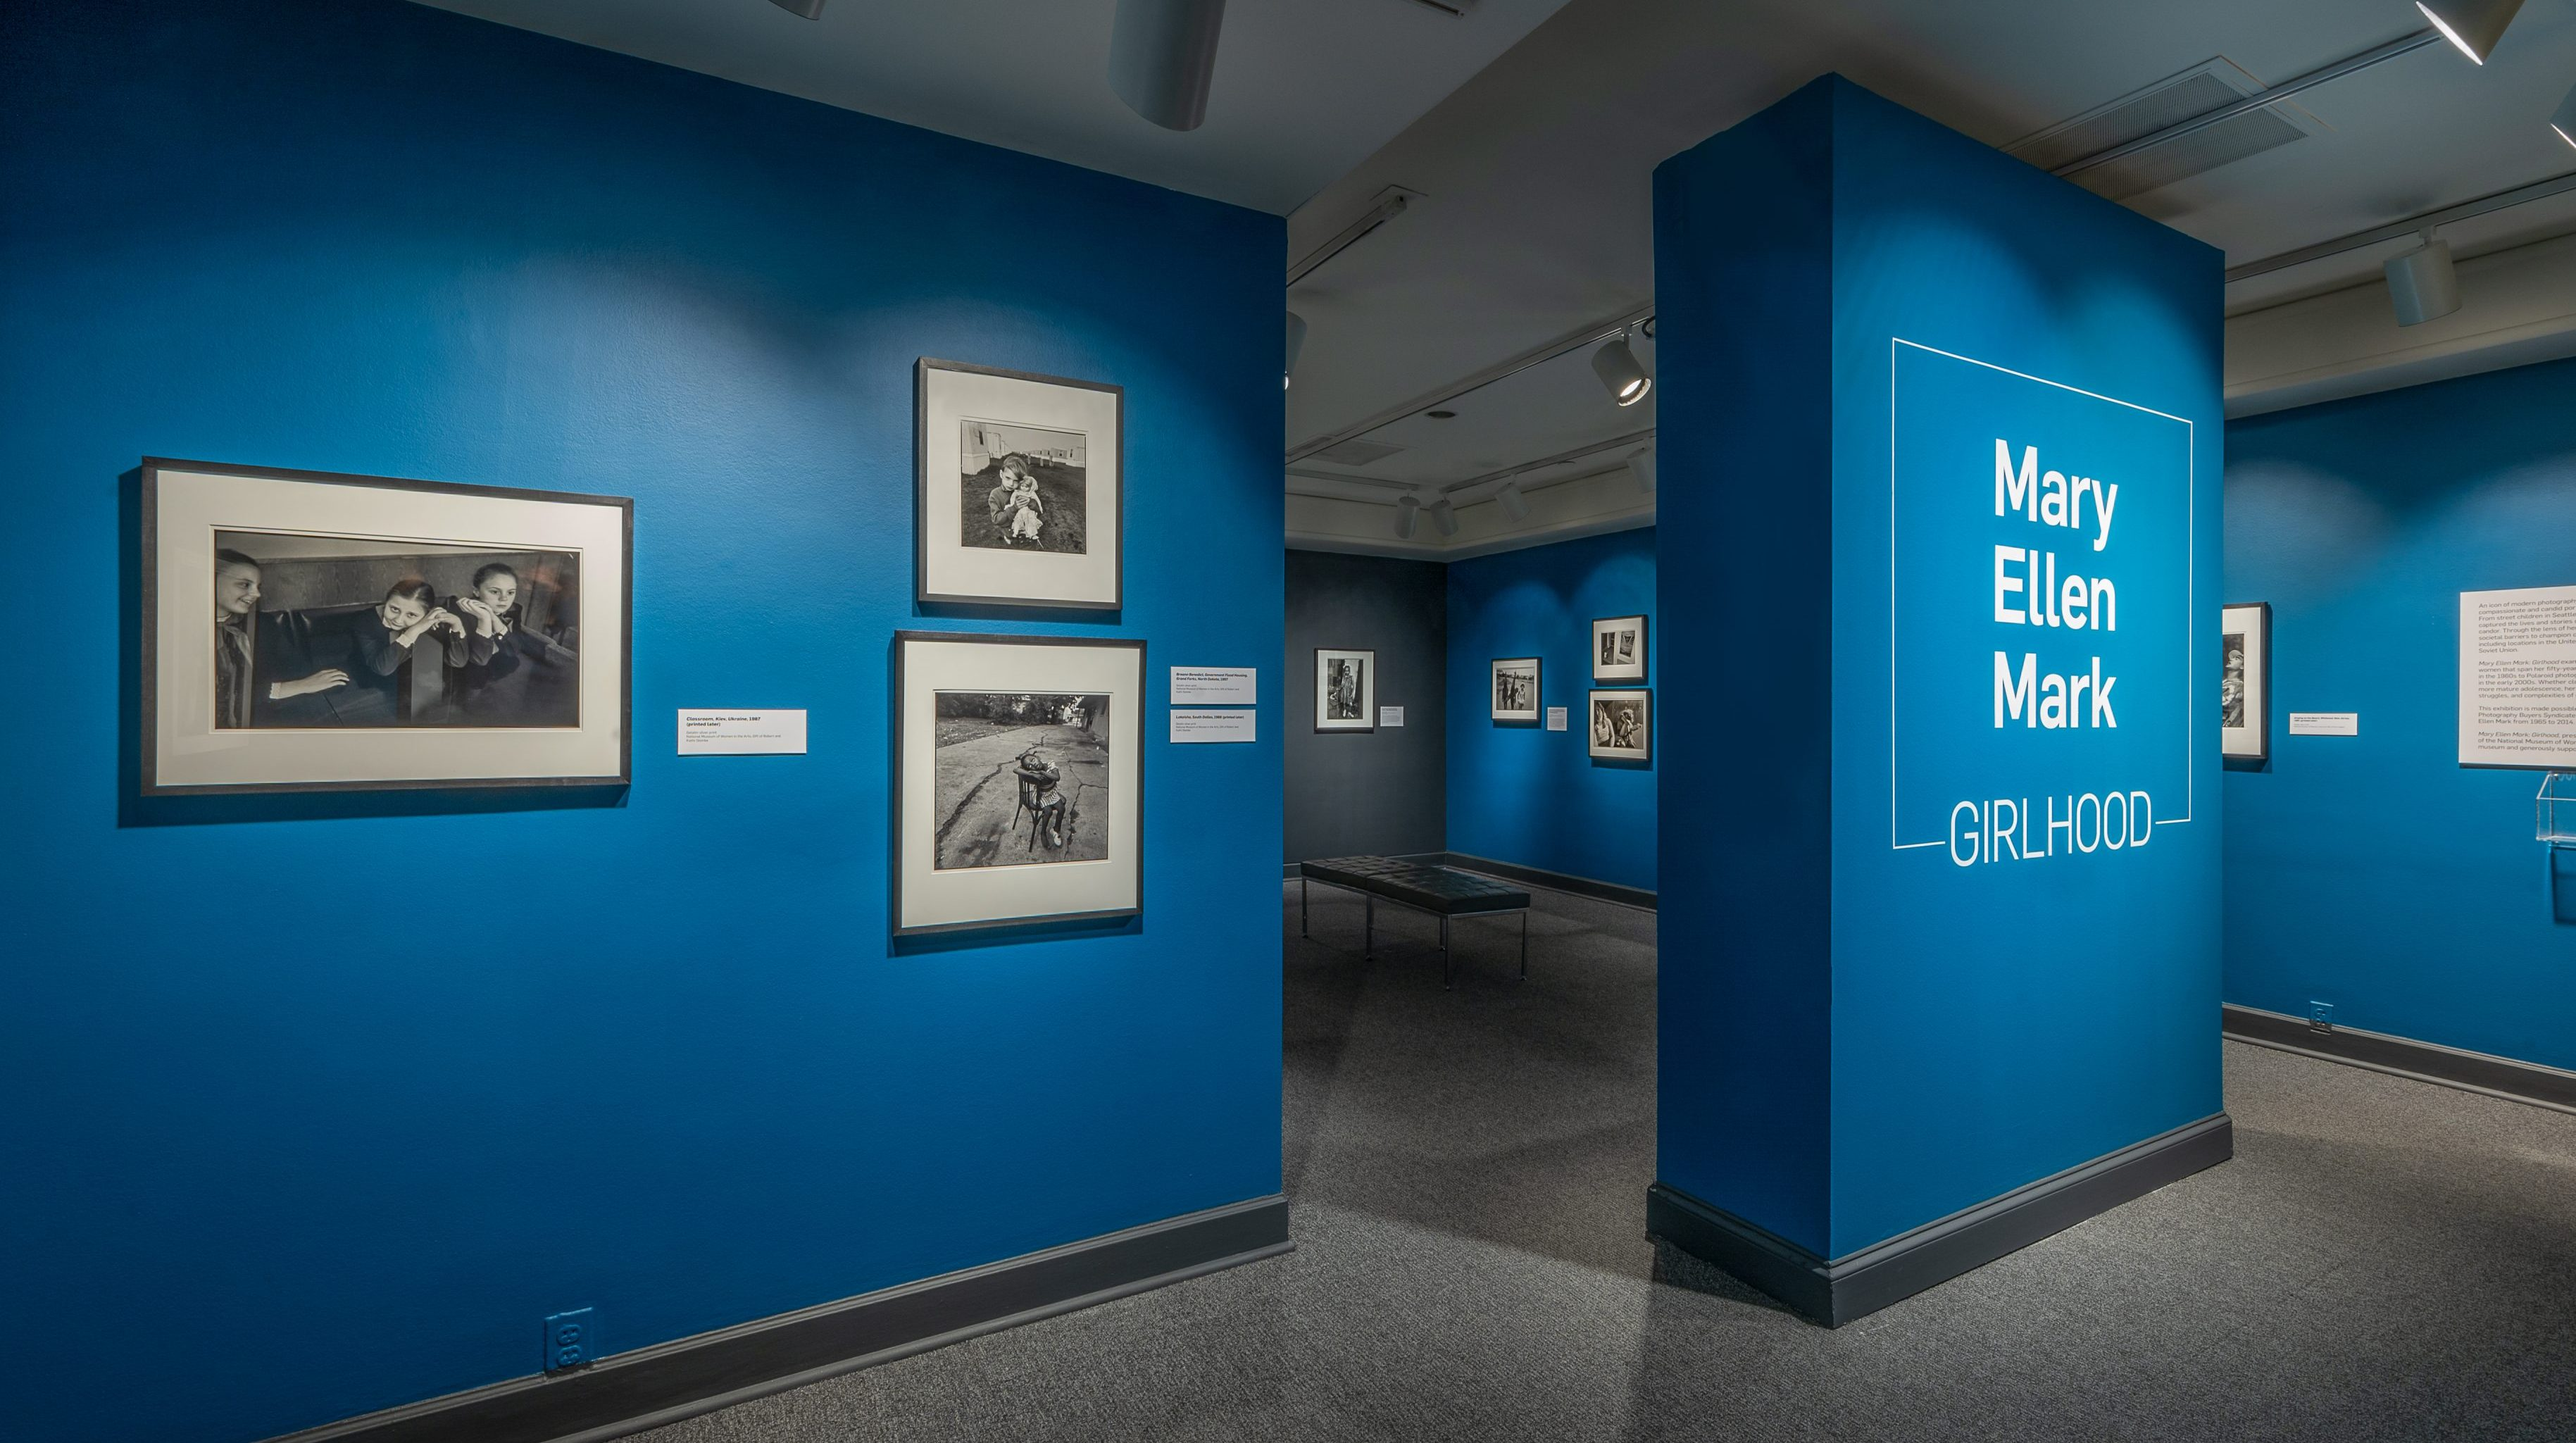 Gallery view of black-and-white photographs hung against blue walls.